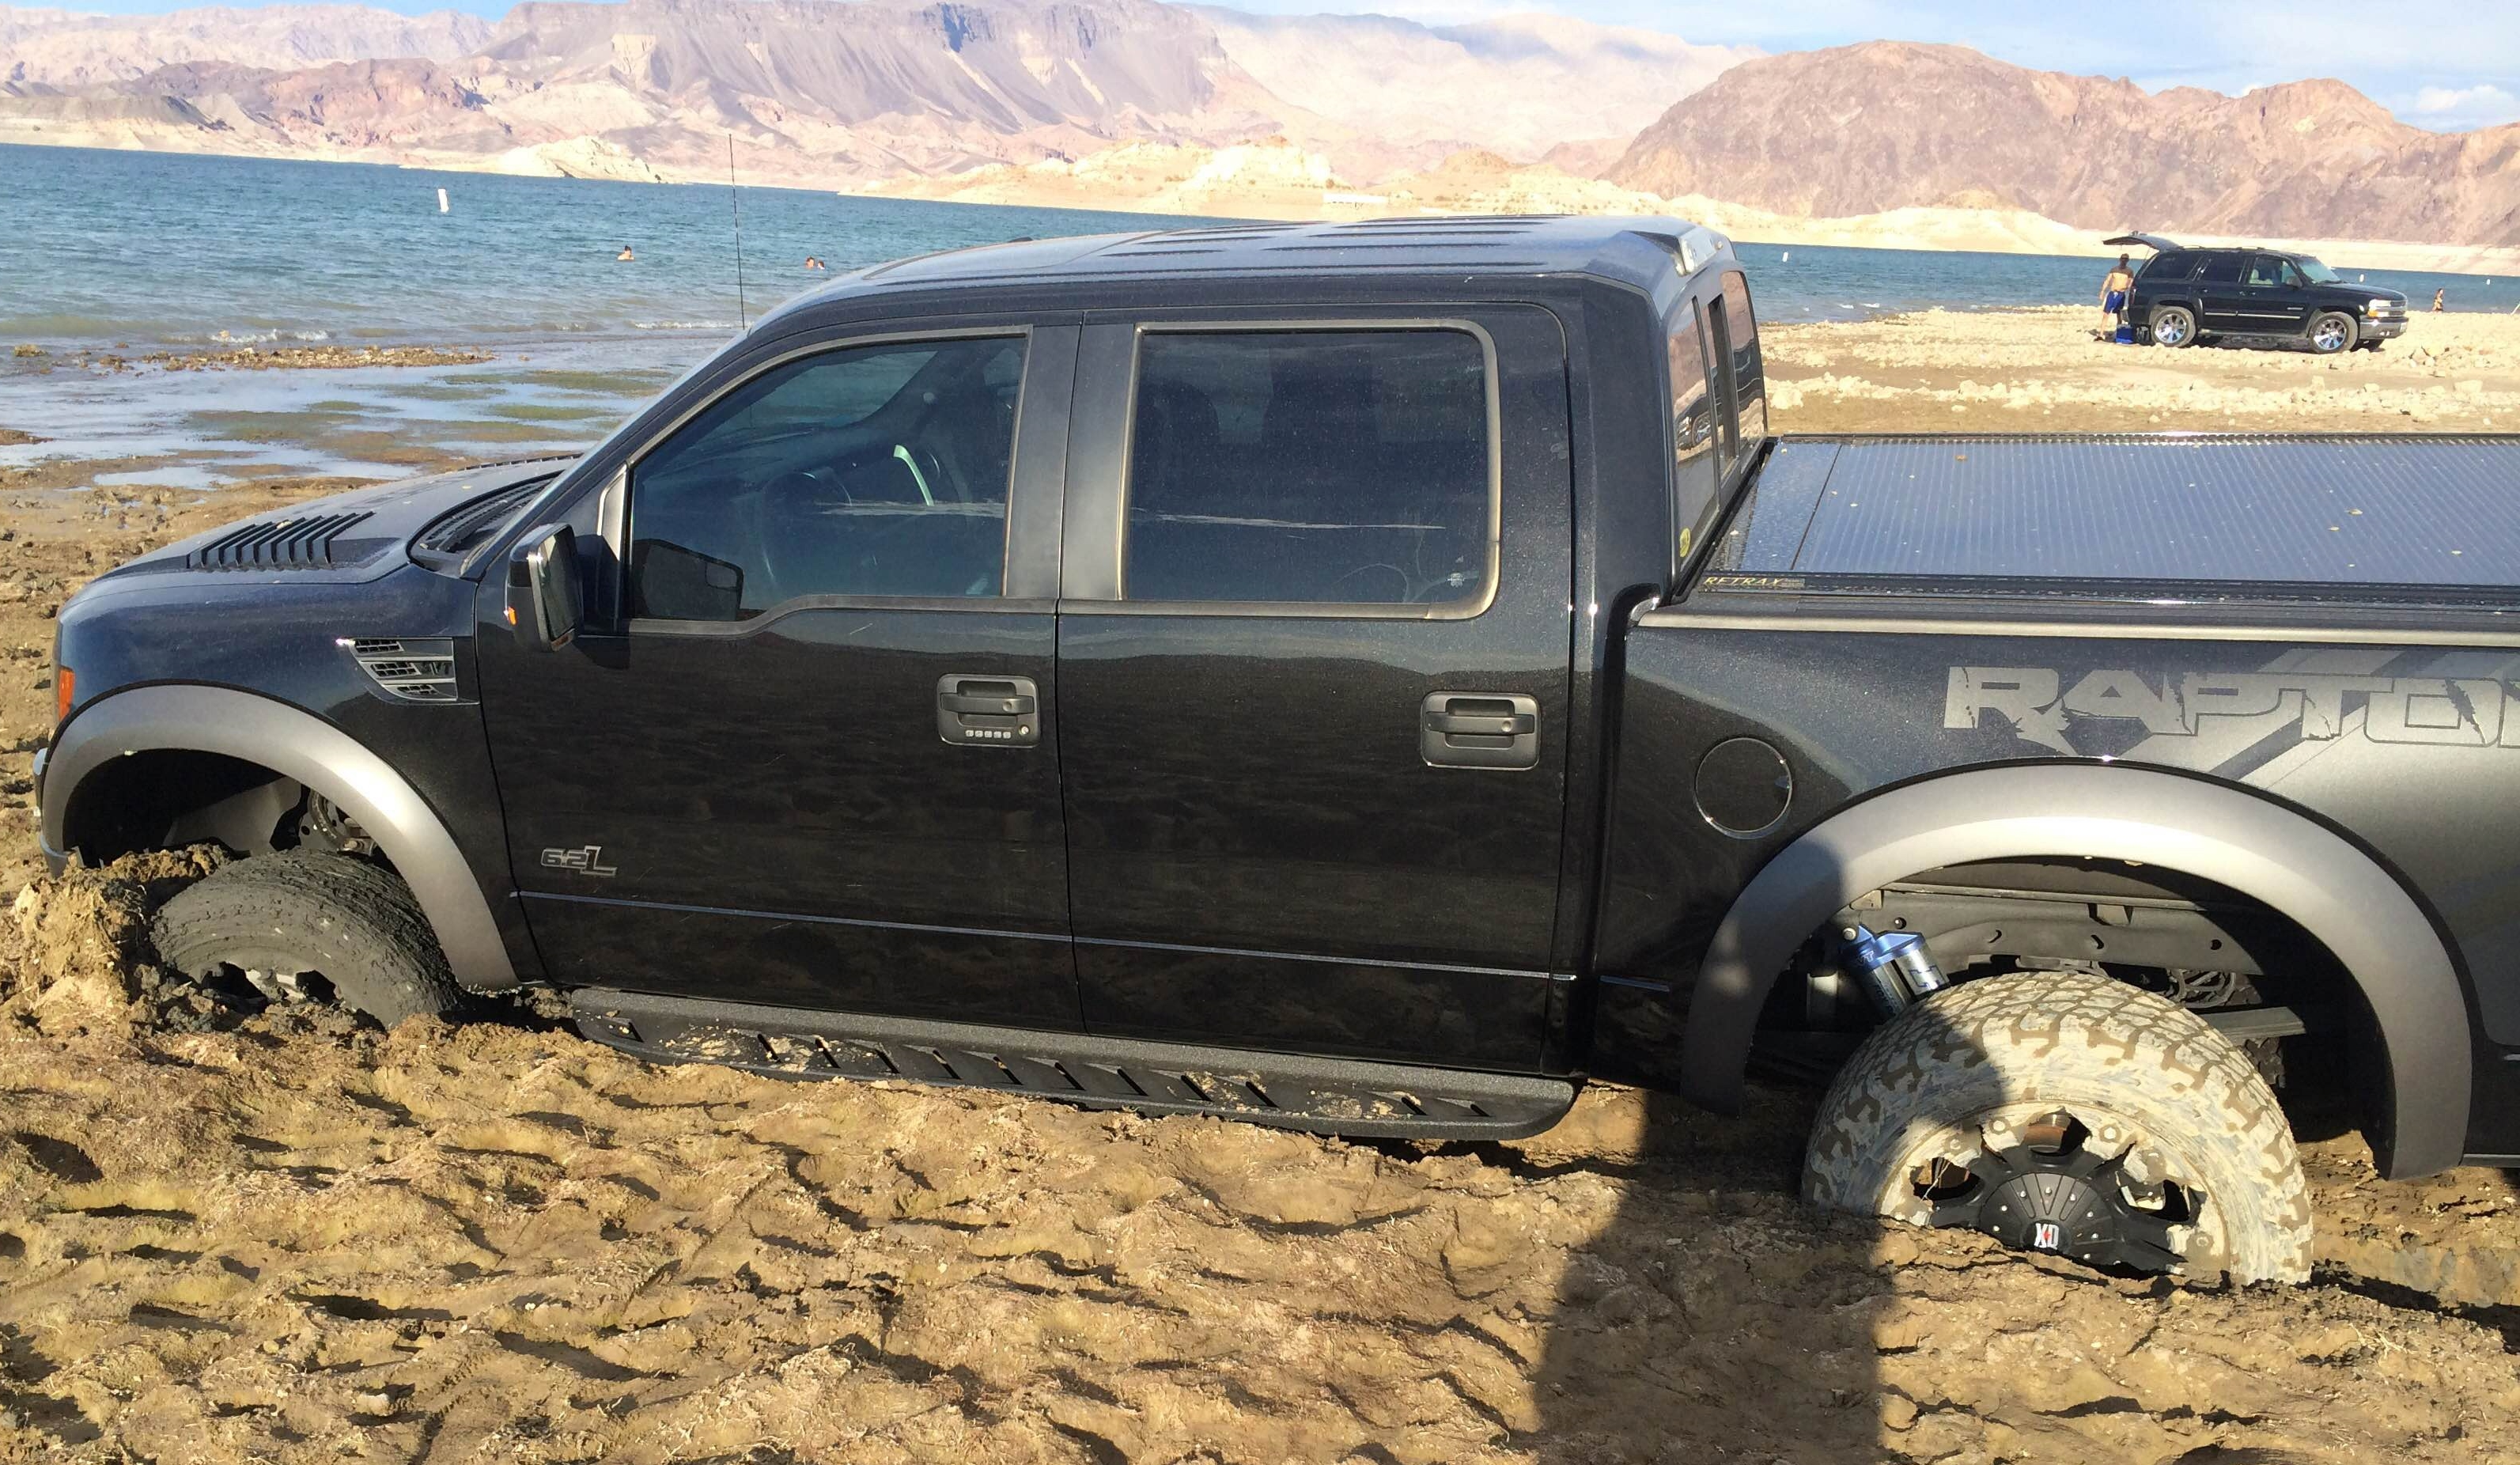 raptor-truck-stuck-swim-beach.jpg